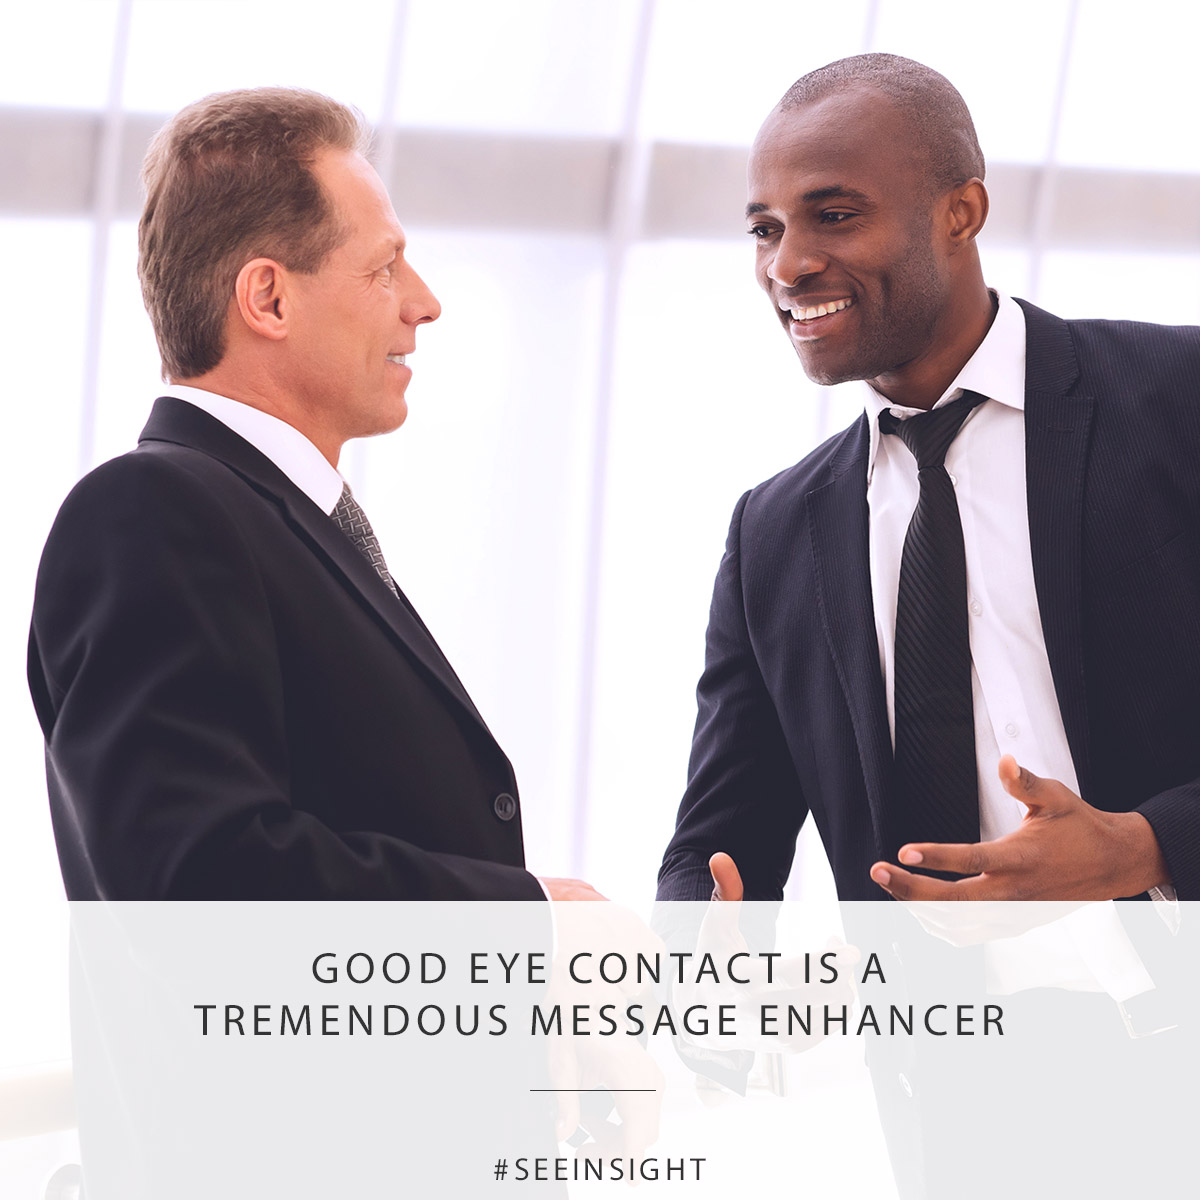 GOOD EYE CONTACT IS A TREMENDOUS MESSAGE ENHANCER